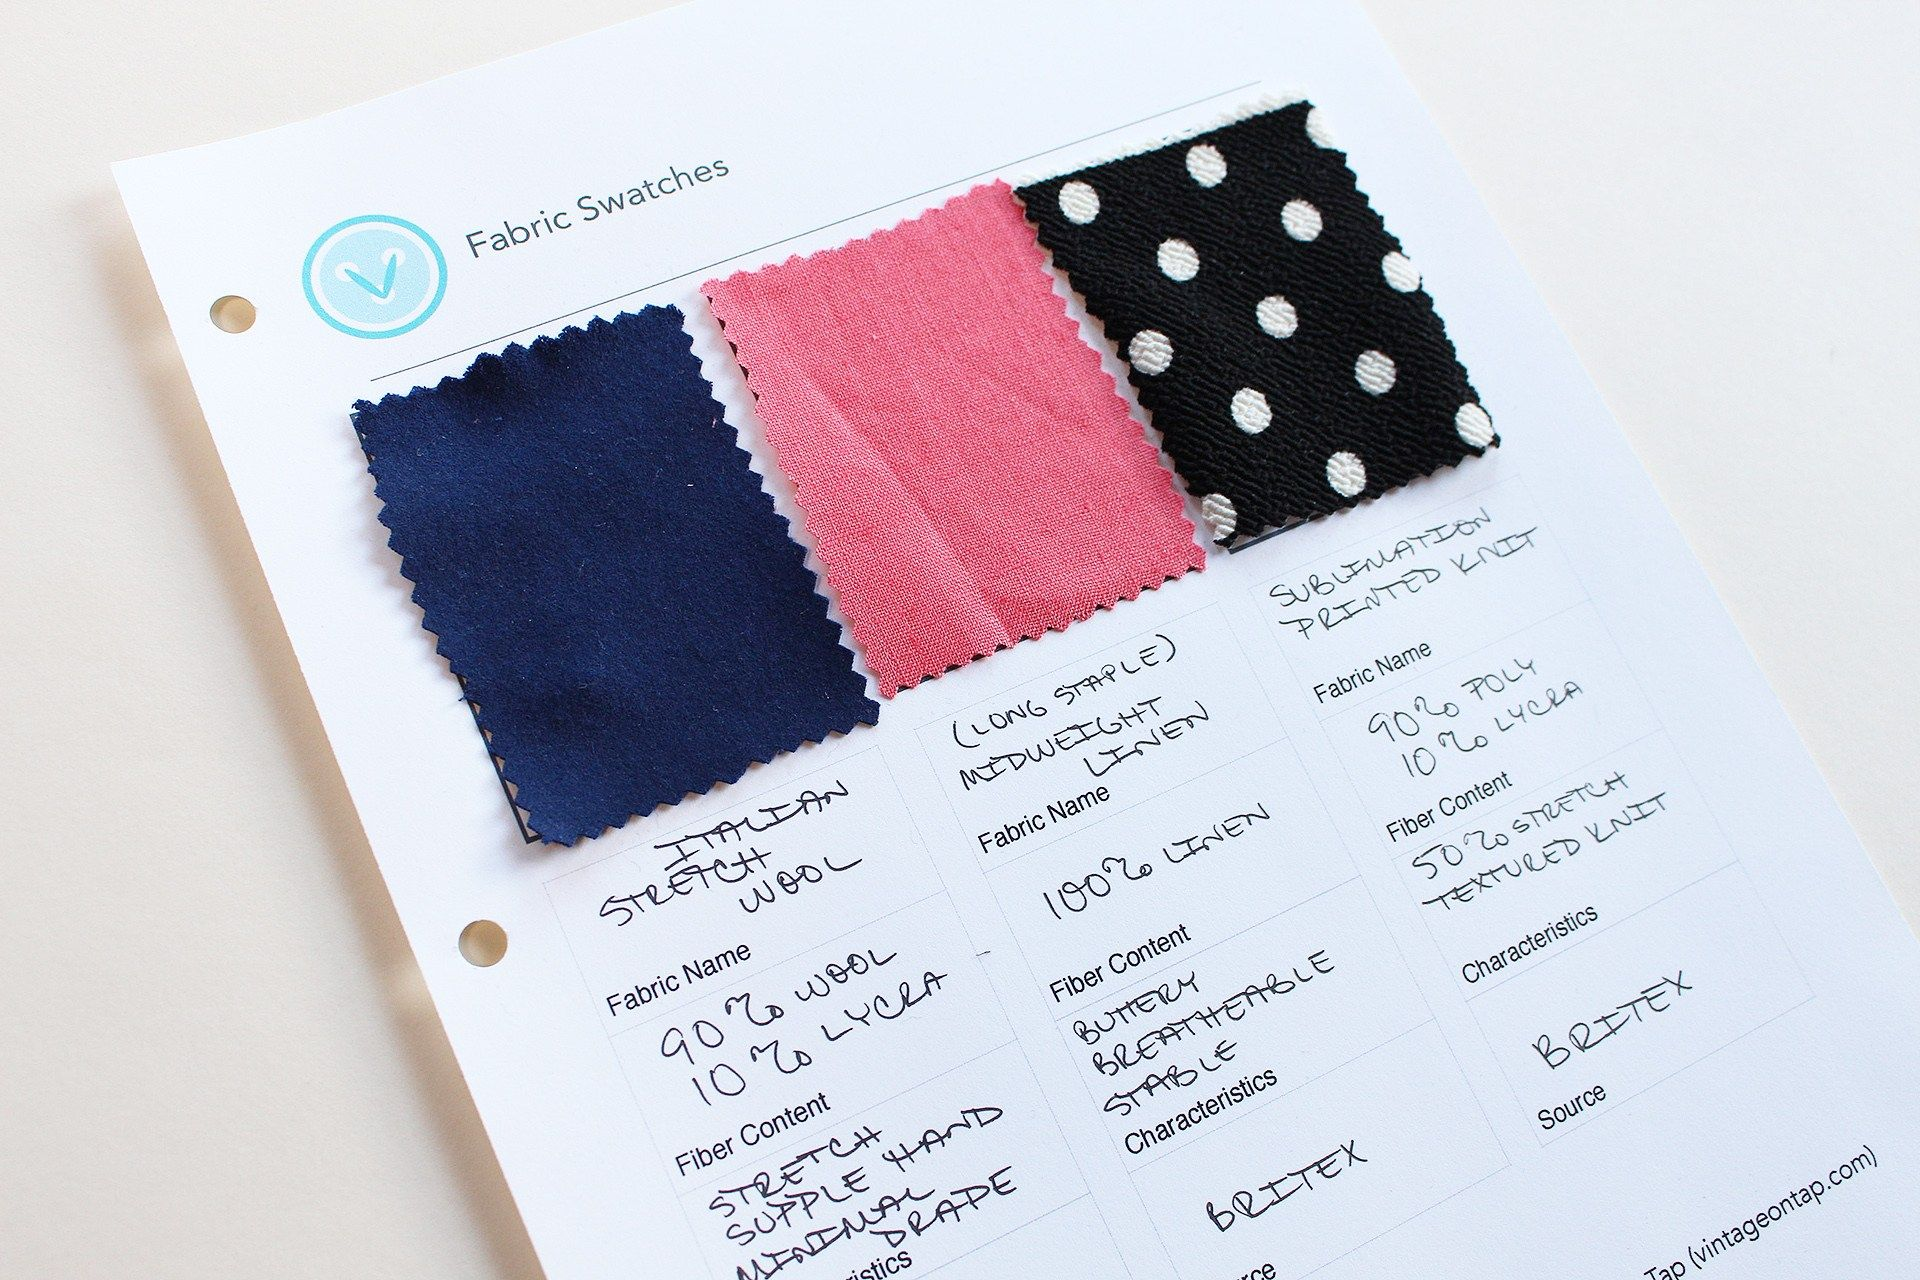 Fabric swatch book free download vintage on tap